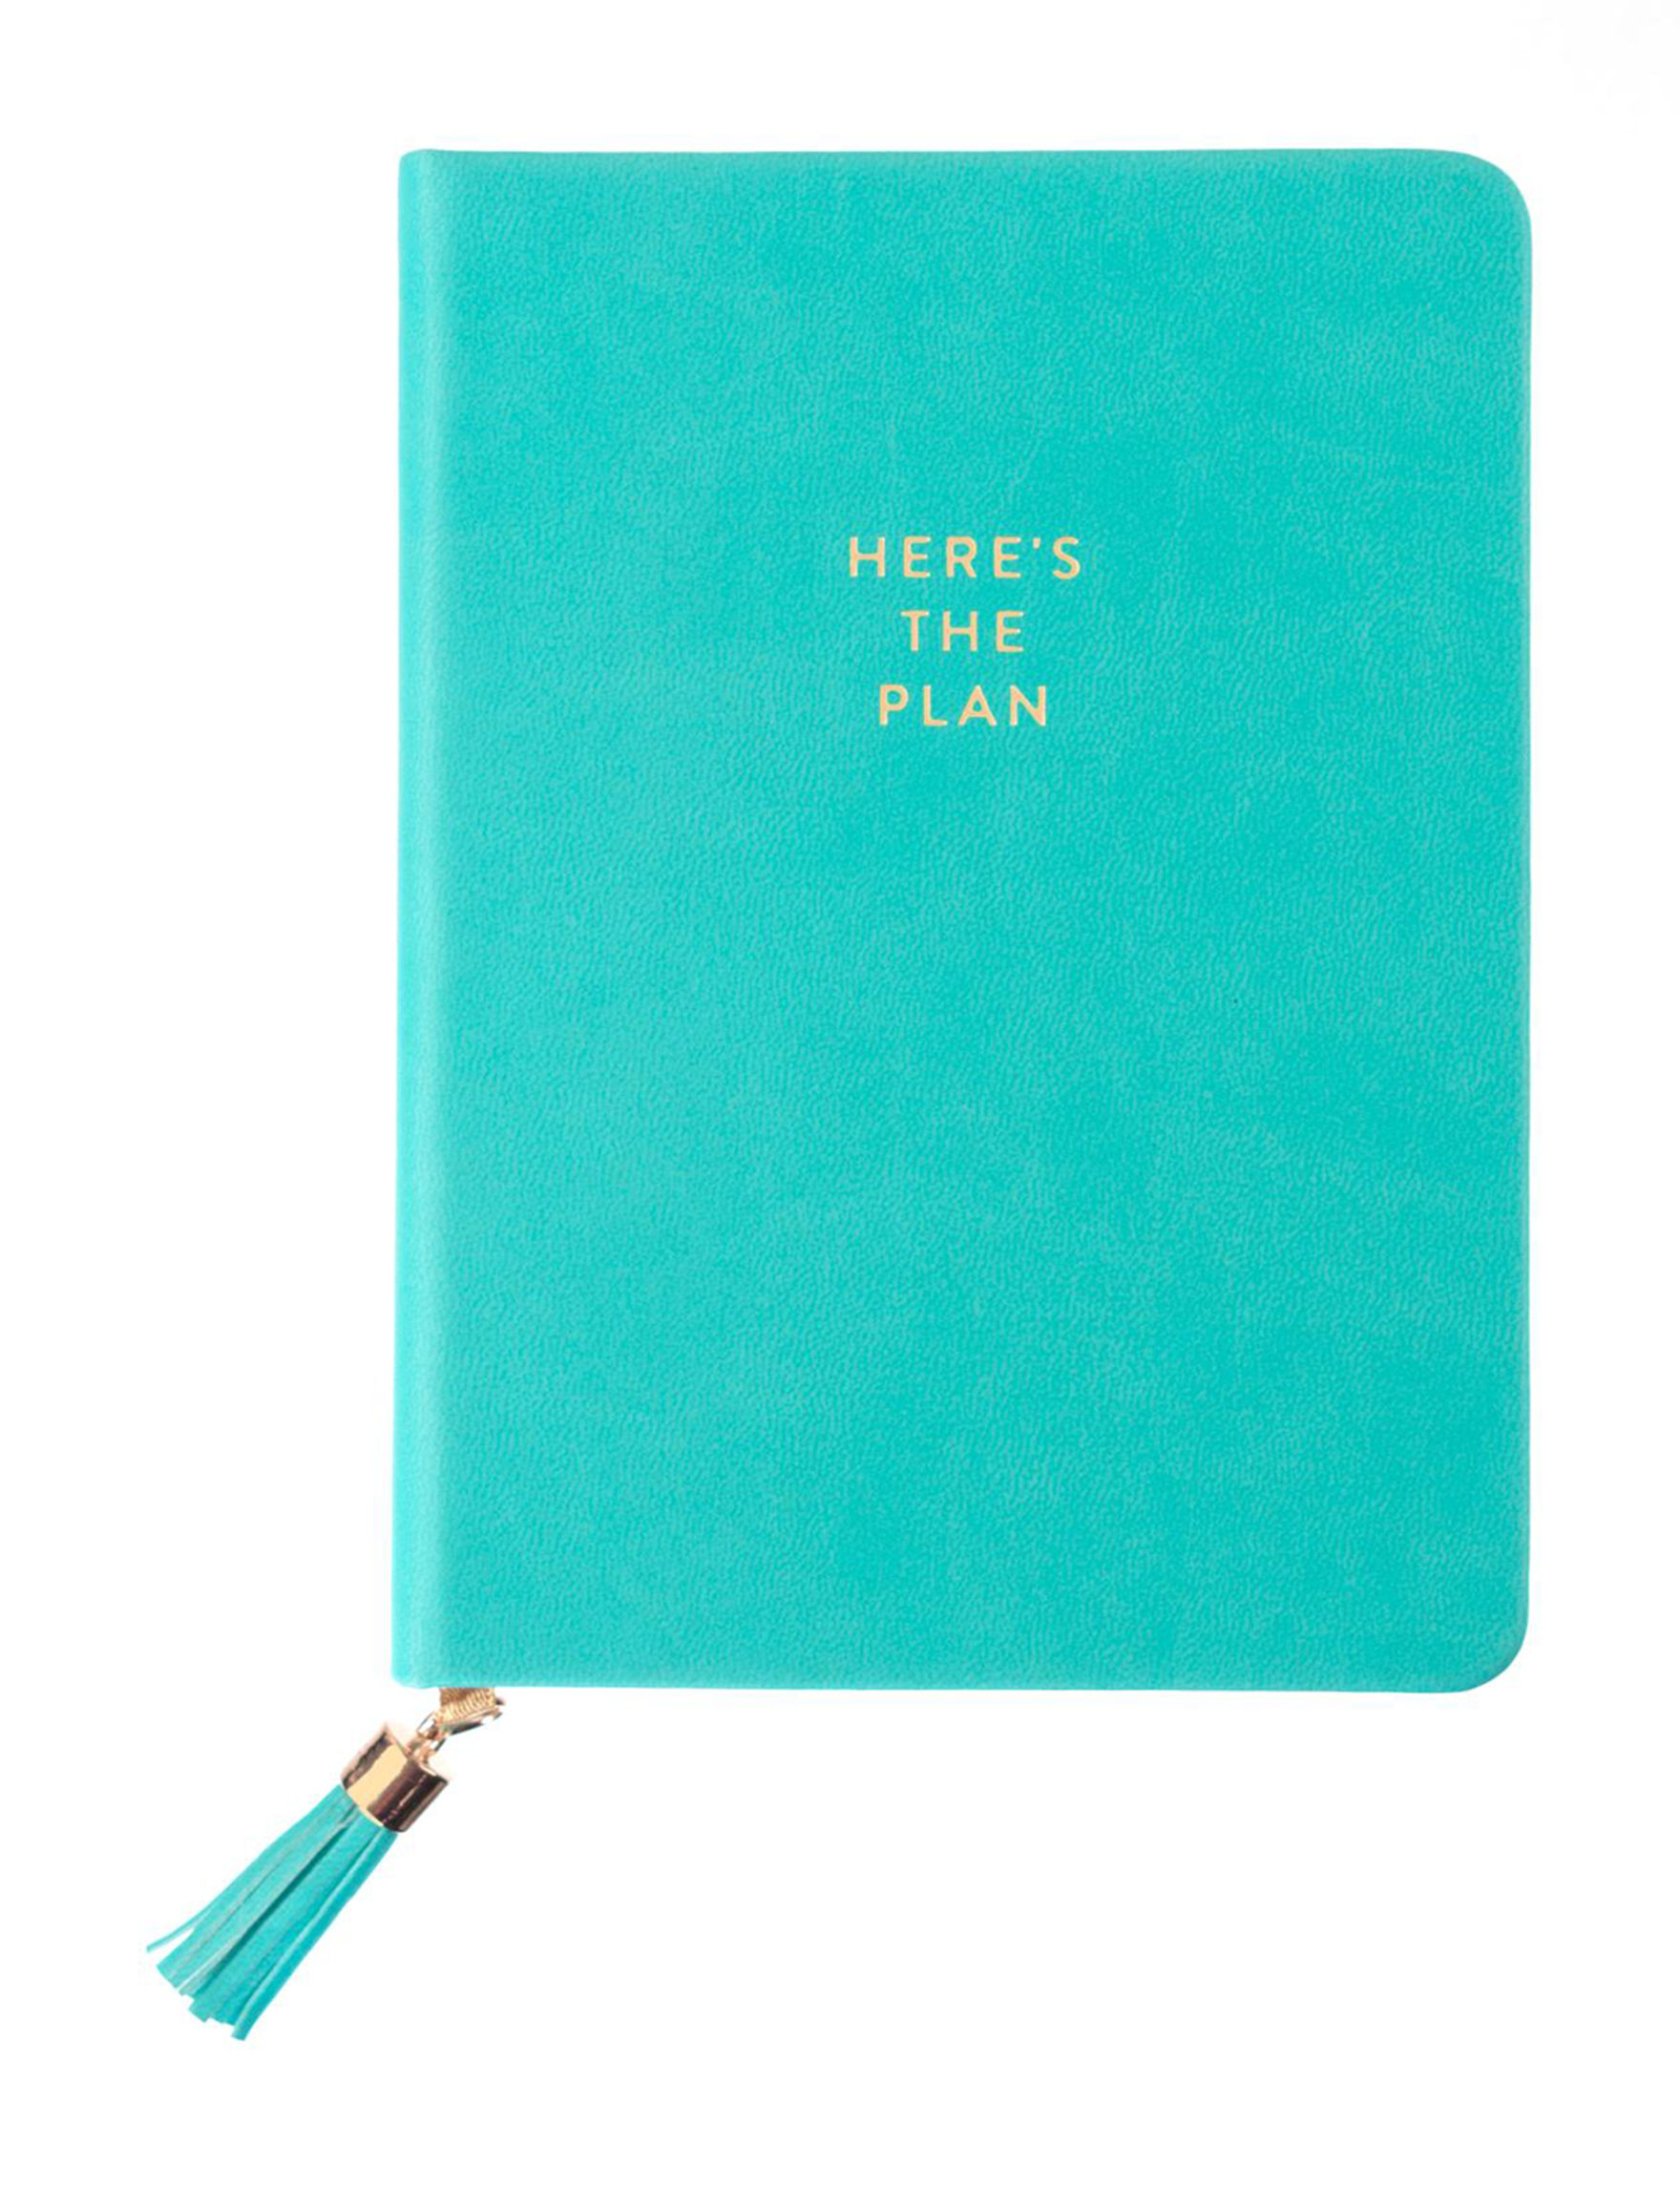 Eccolo Seafoam Calendars & Planners School & Office Supplies